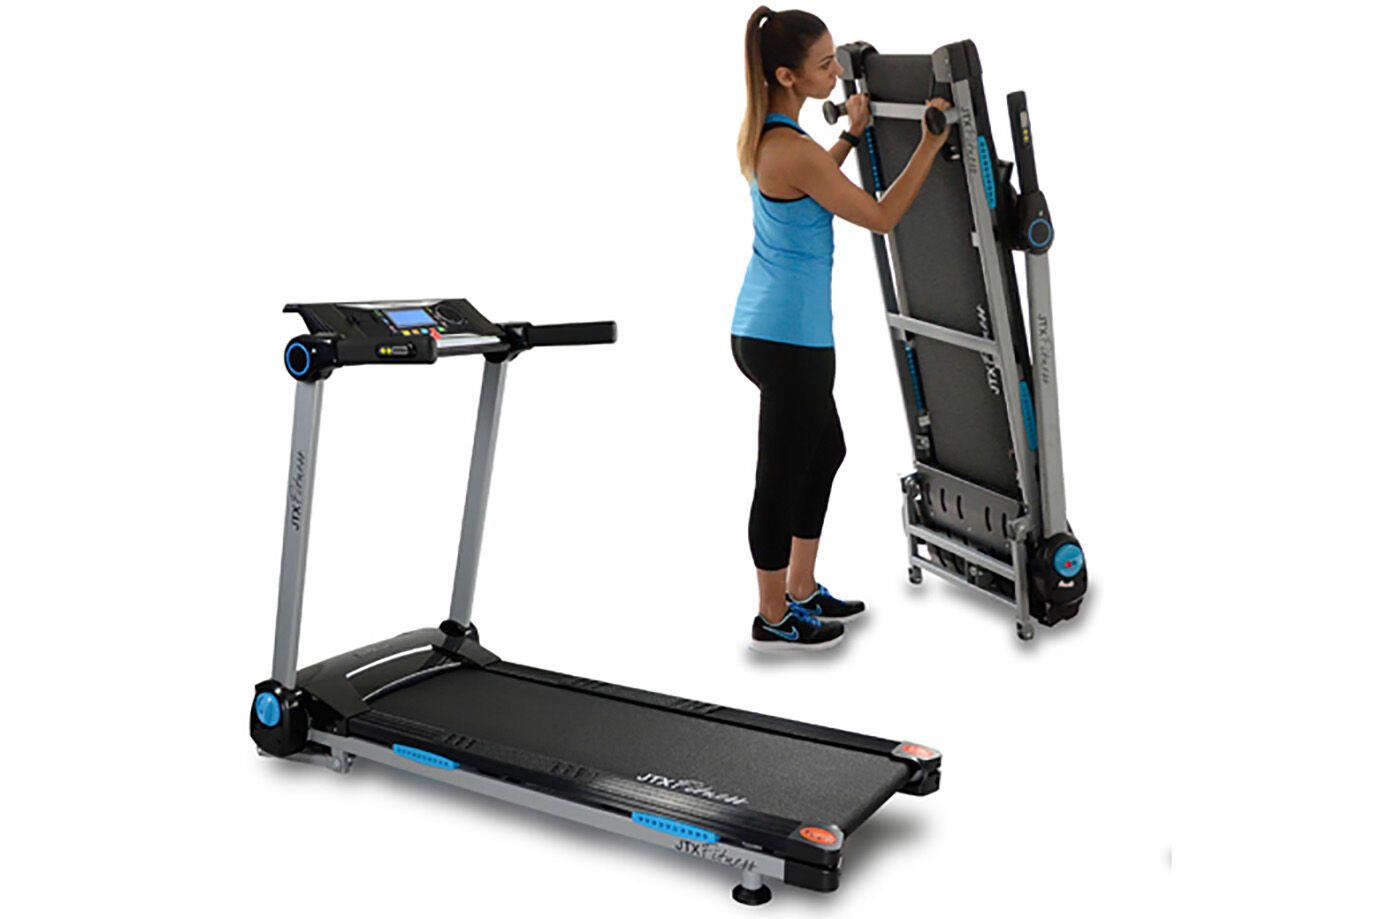 Compact Treadmill from JTX Fitness